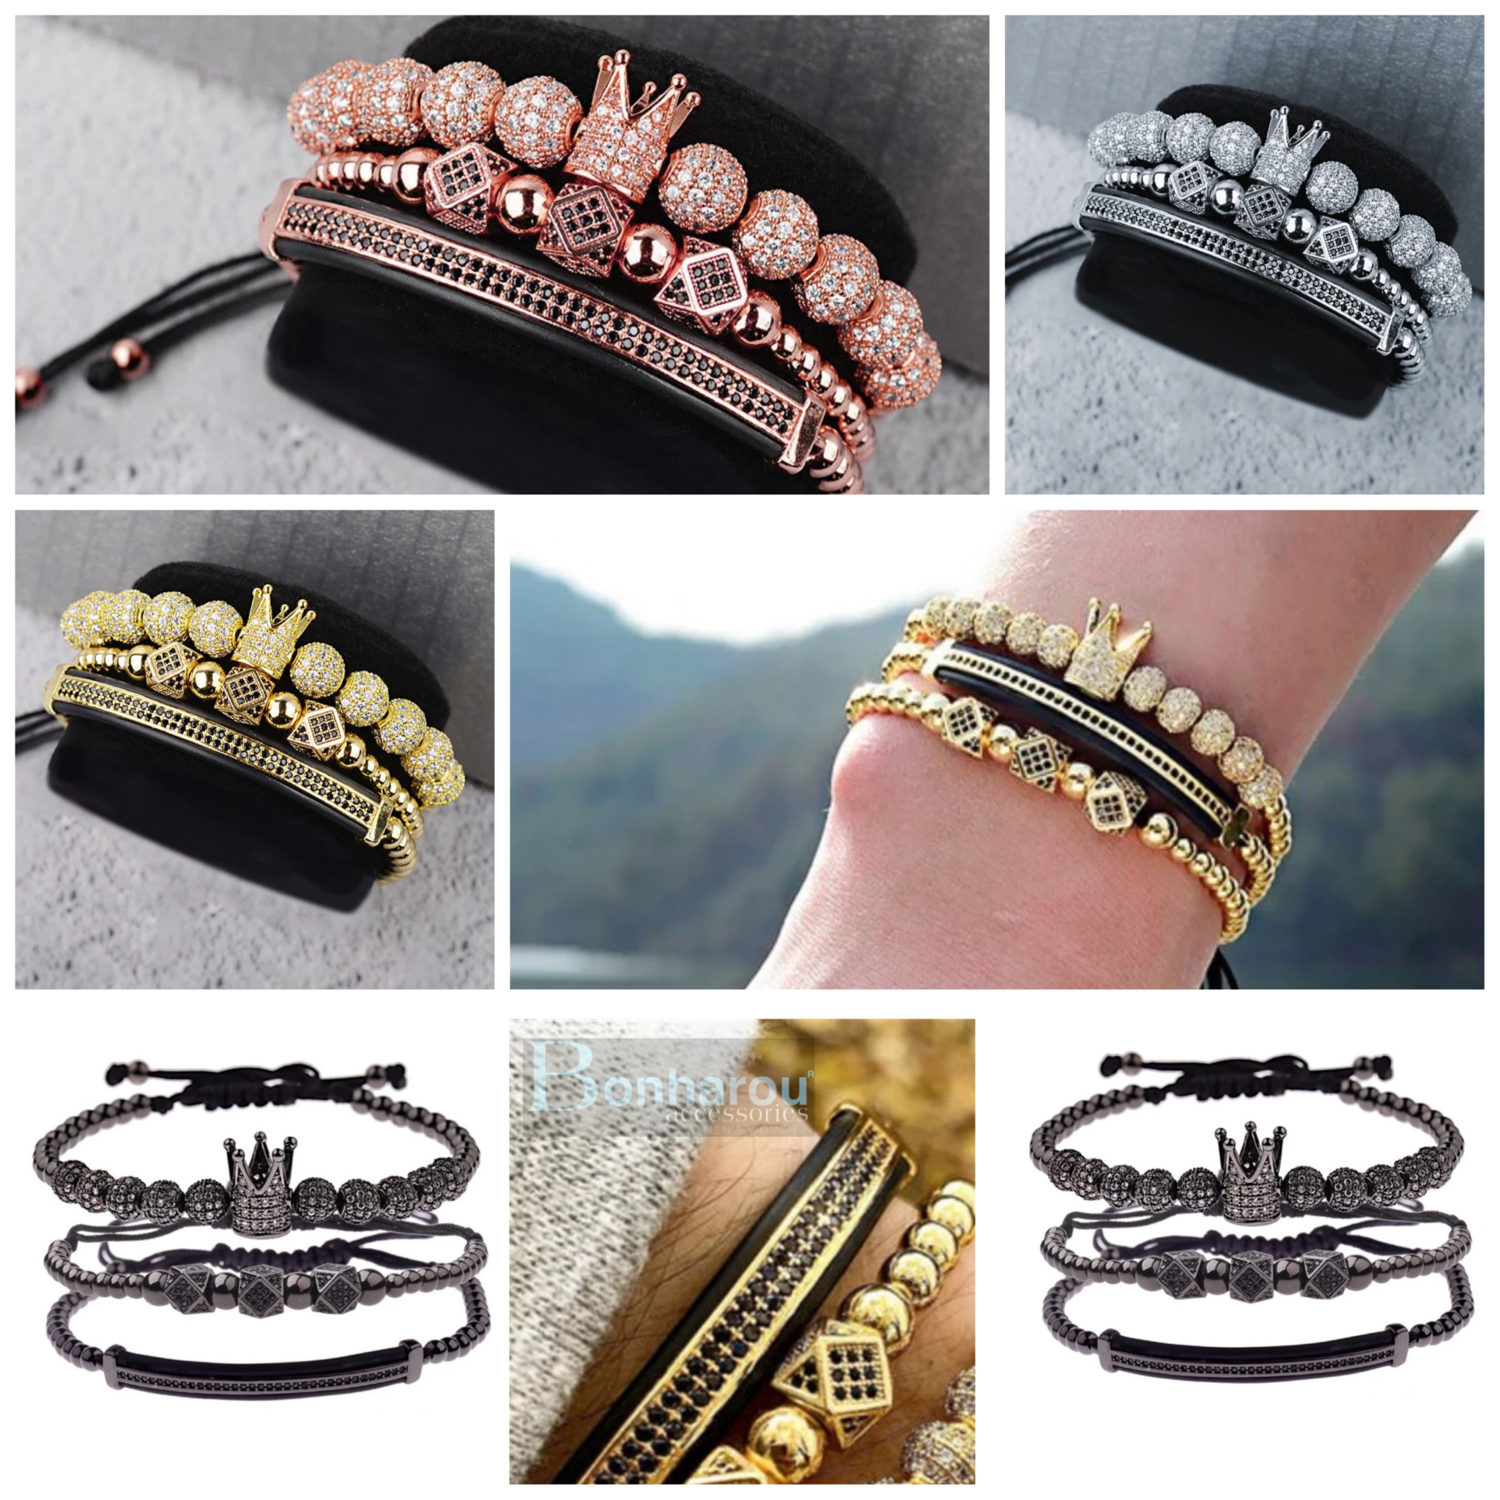 LUXURY CROWN BRACELET 3 PZAS.